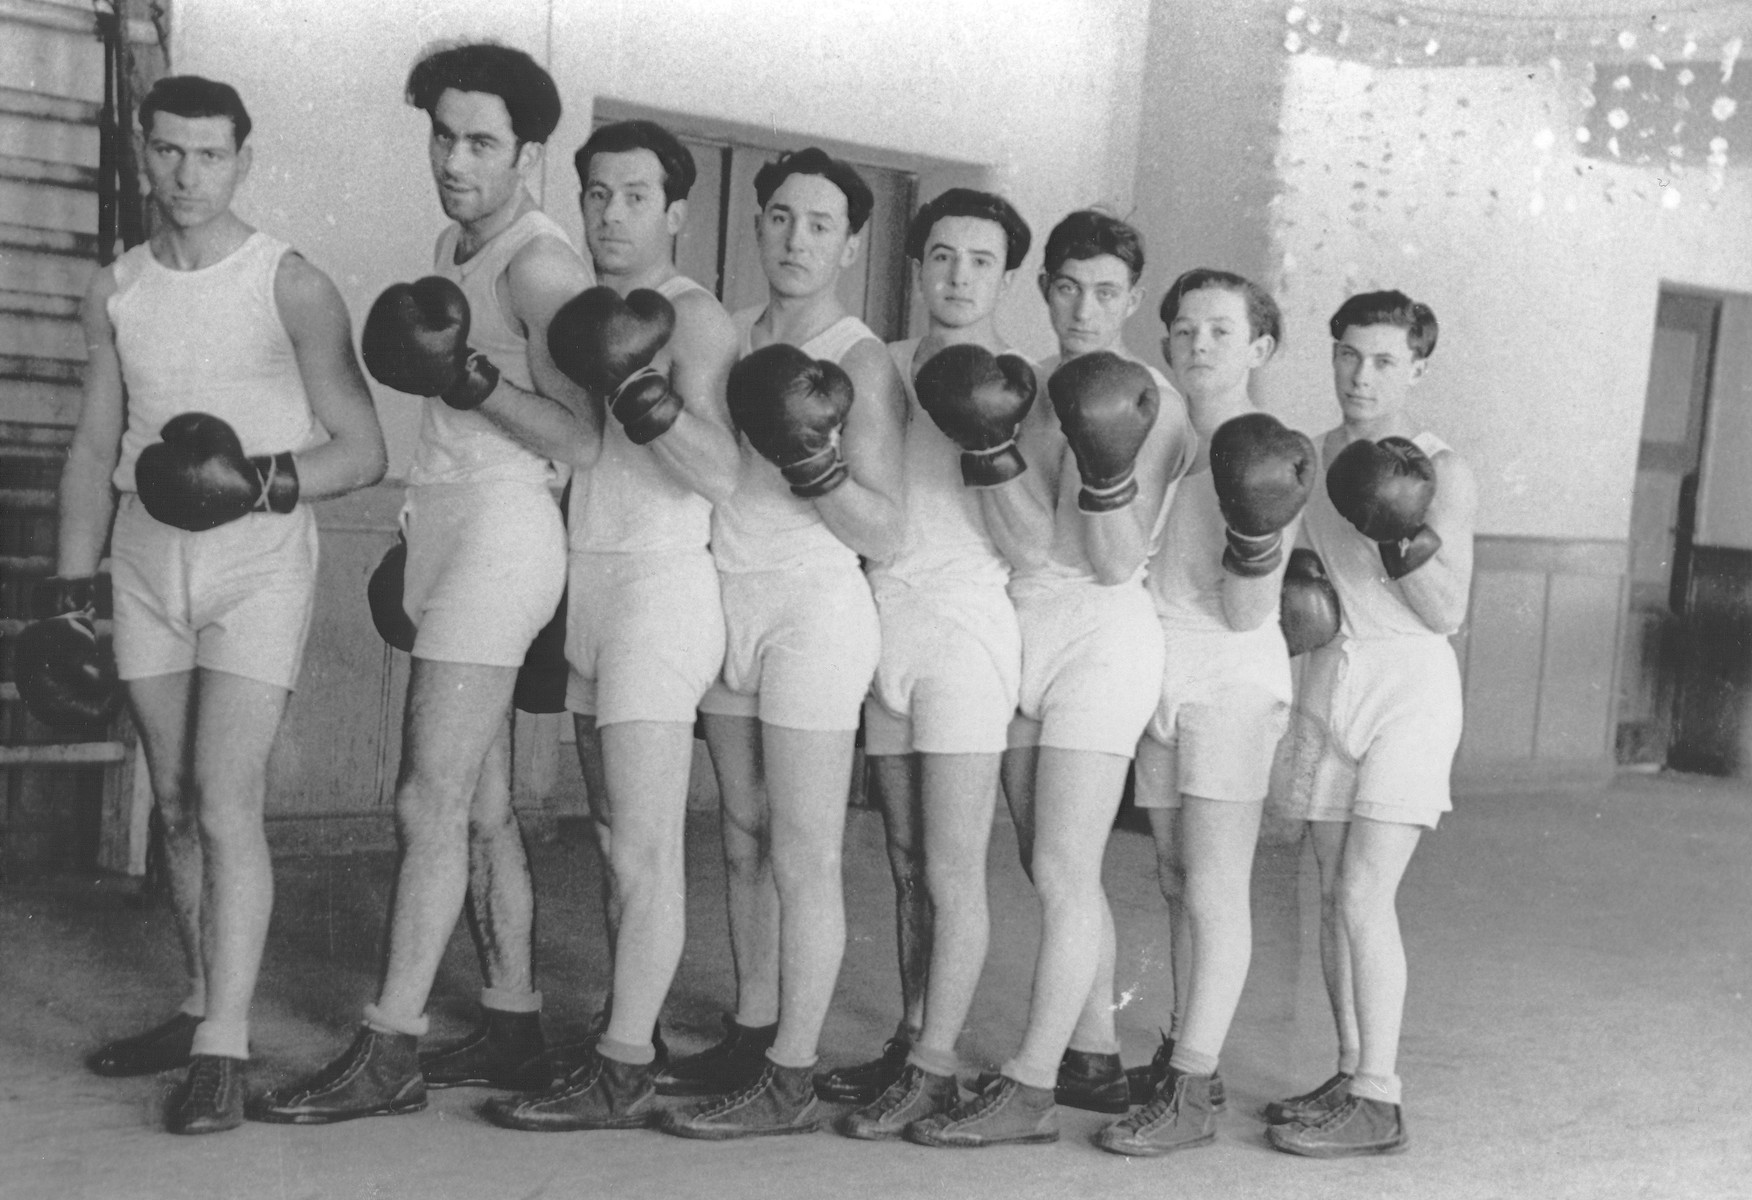 Group portrait of members of a Jewish boxing team at a displaced persons camp in Germany [probably Hofgeismar].  Standing third from the left is Majzesz Szczukowski.